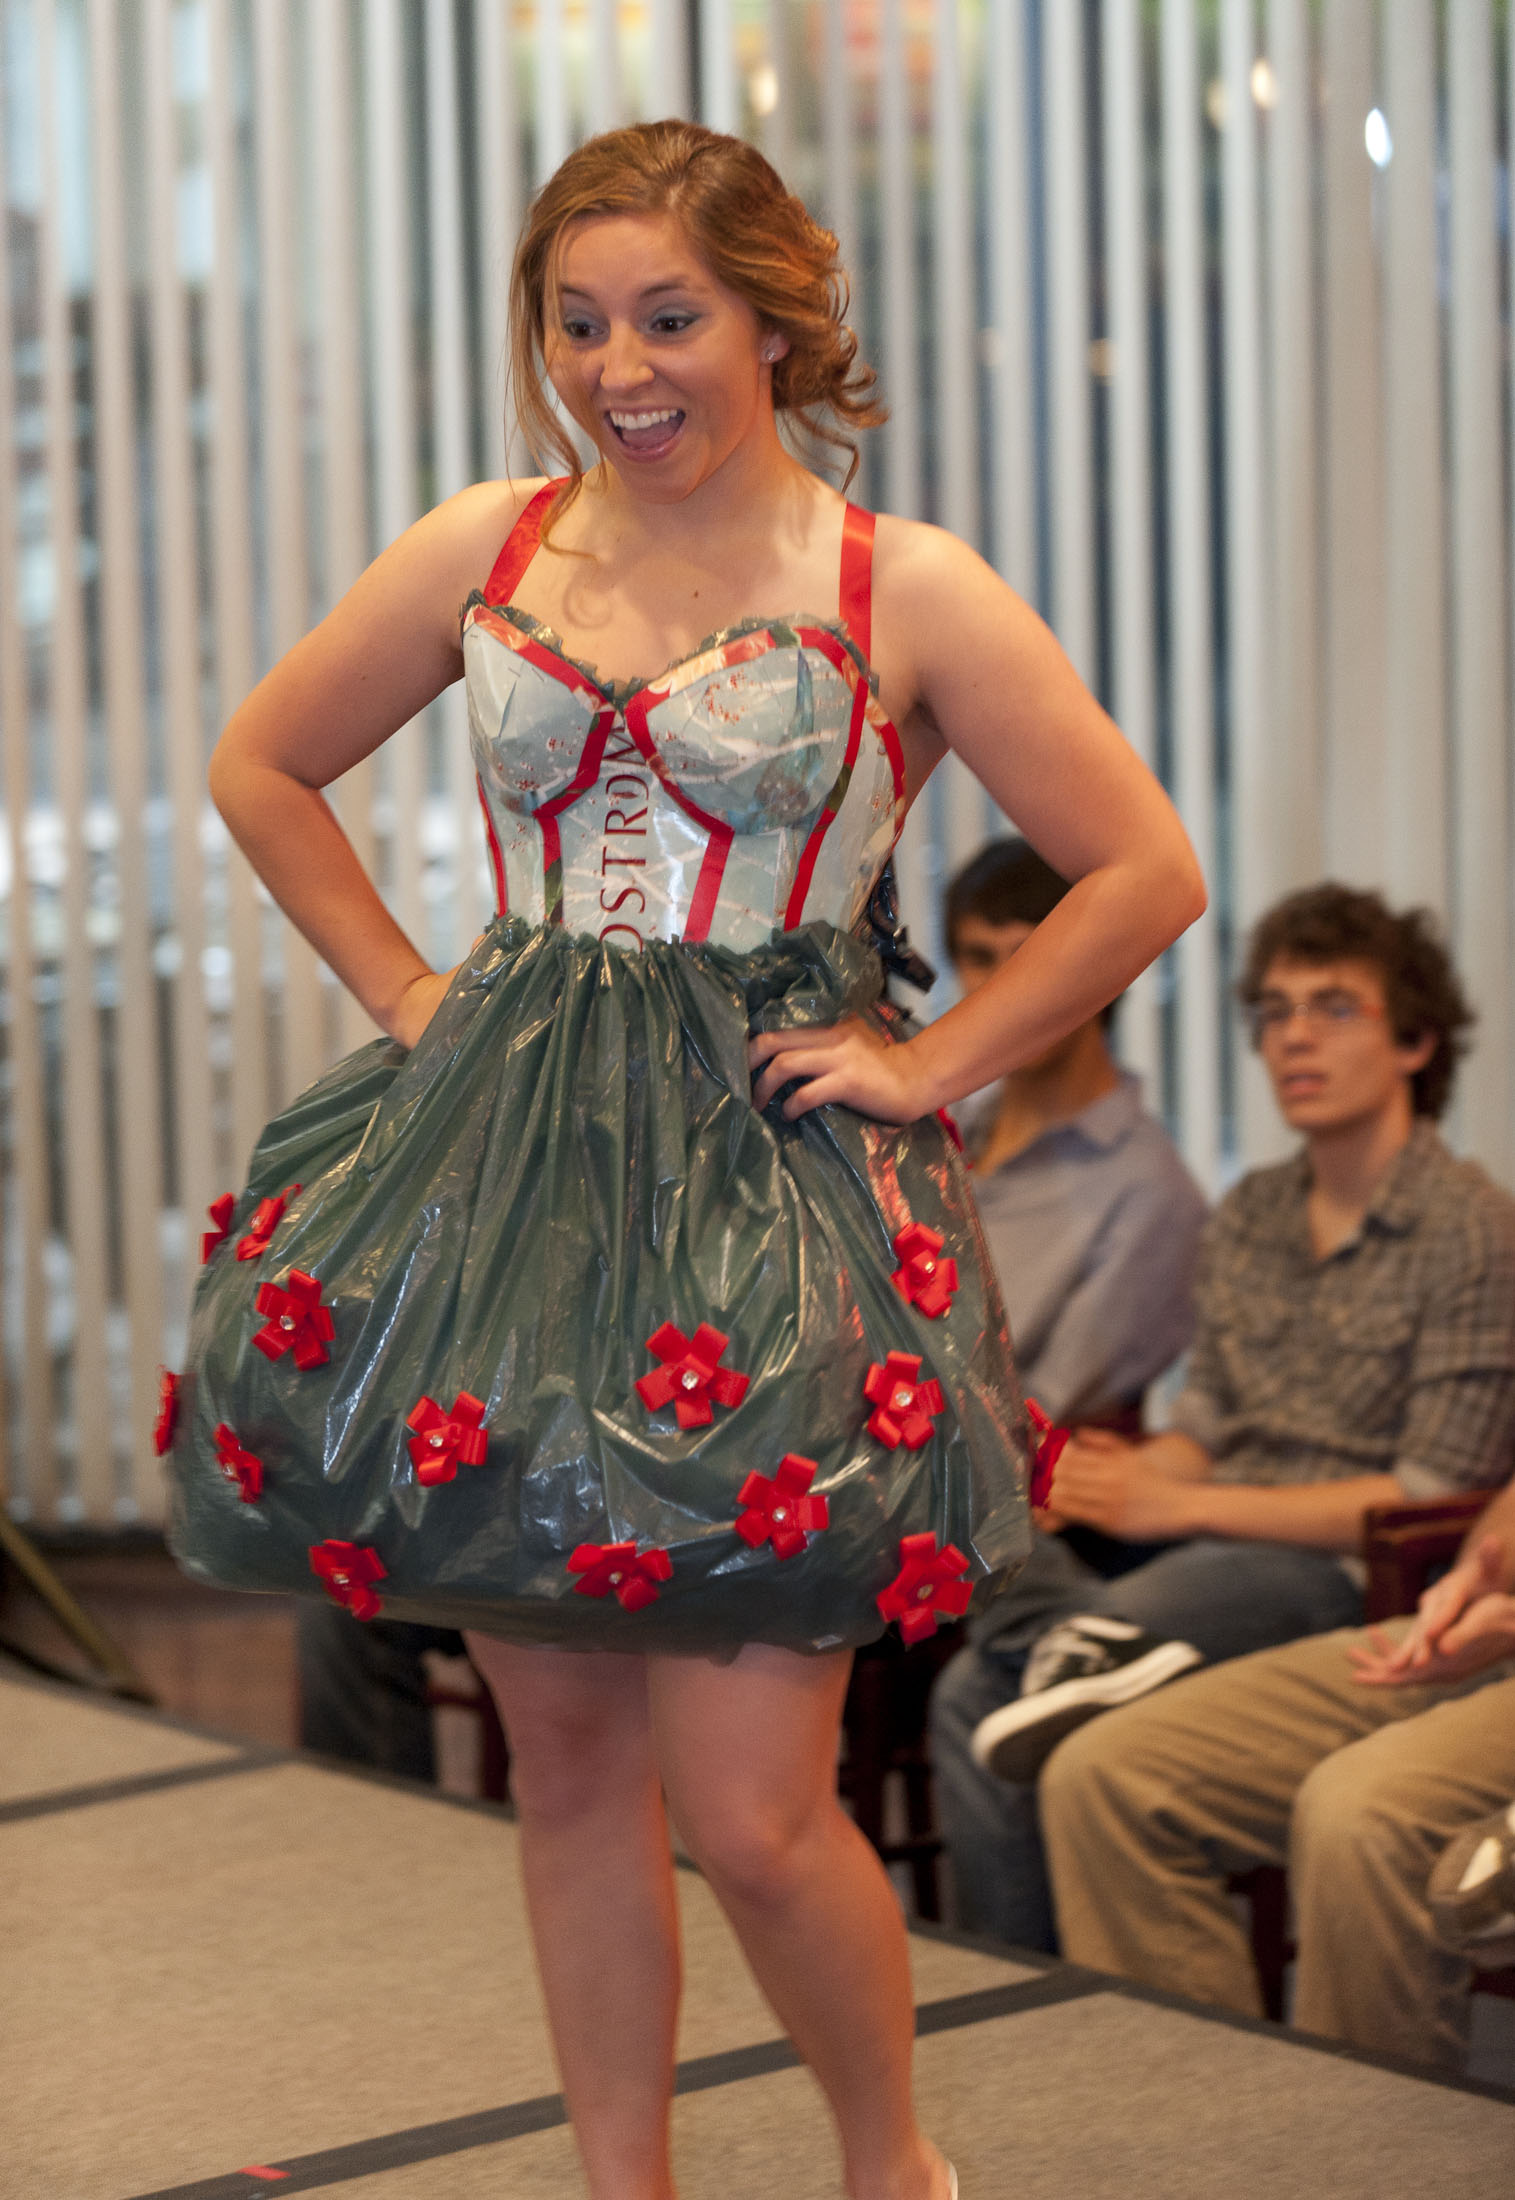 First-year business student Blaire Bogard graces the catwalk with this bubble dress made by Alessandra Shultz, also a first-year business student.